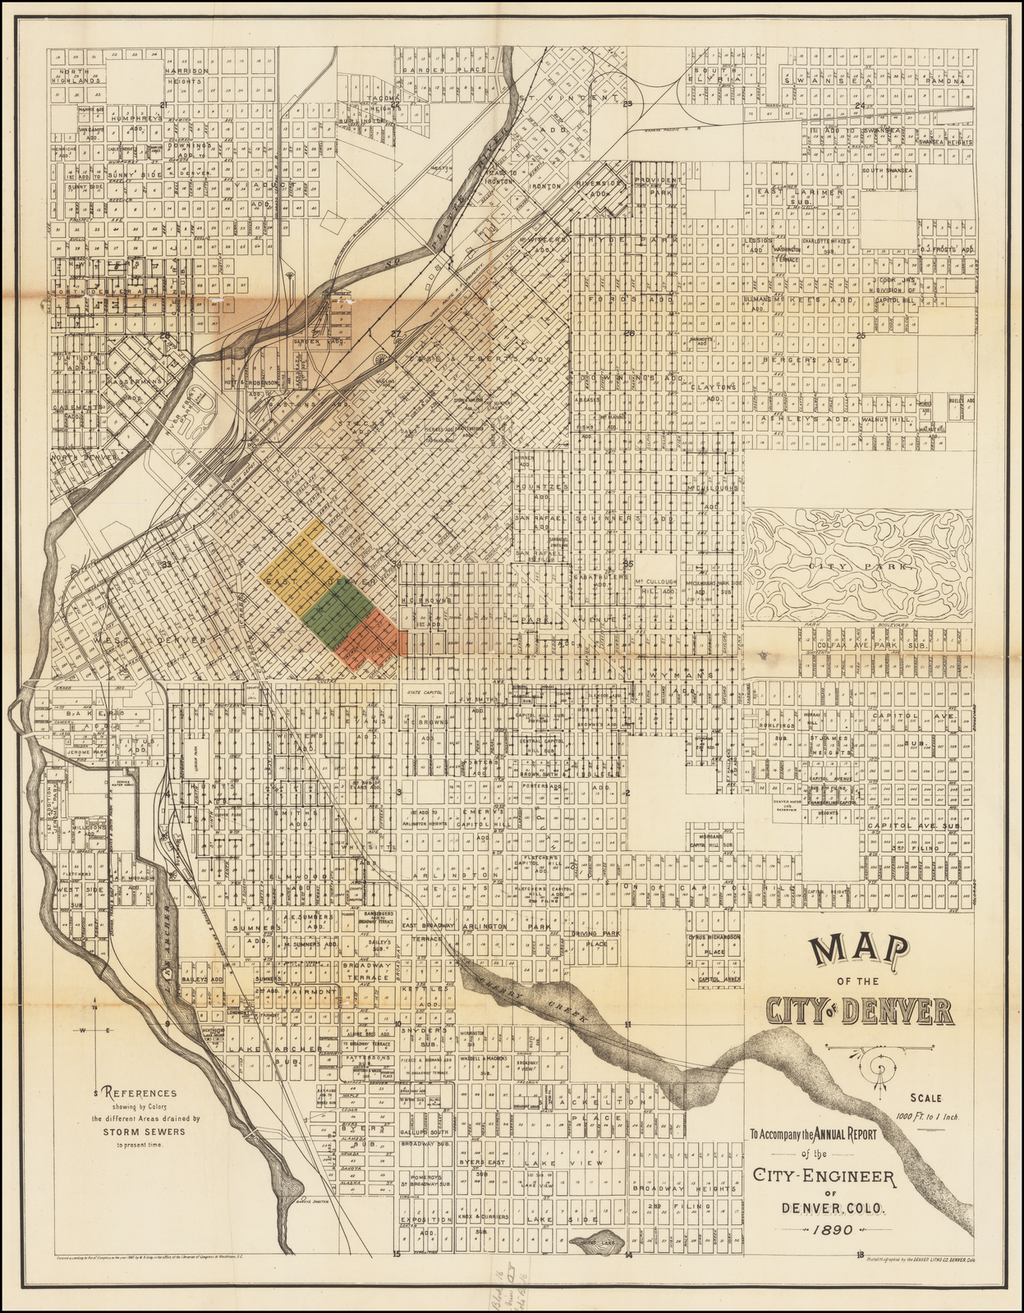 Map of the City of Denver -- To Accompany the Annual Report of the City Engineer of Denver, Colo.  1890 By Denver Litho Co.